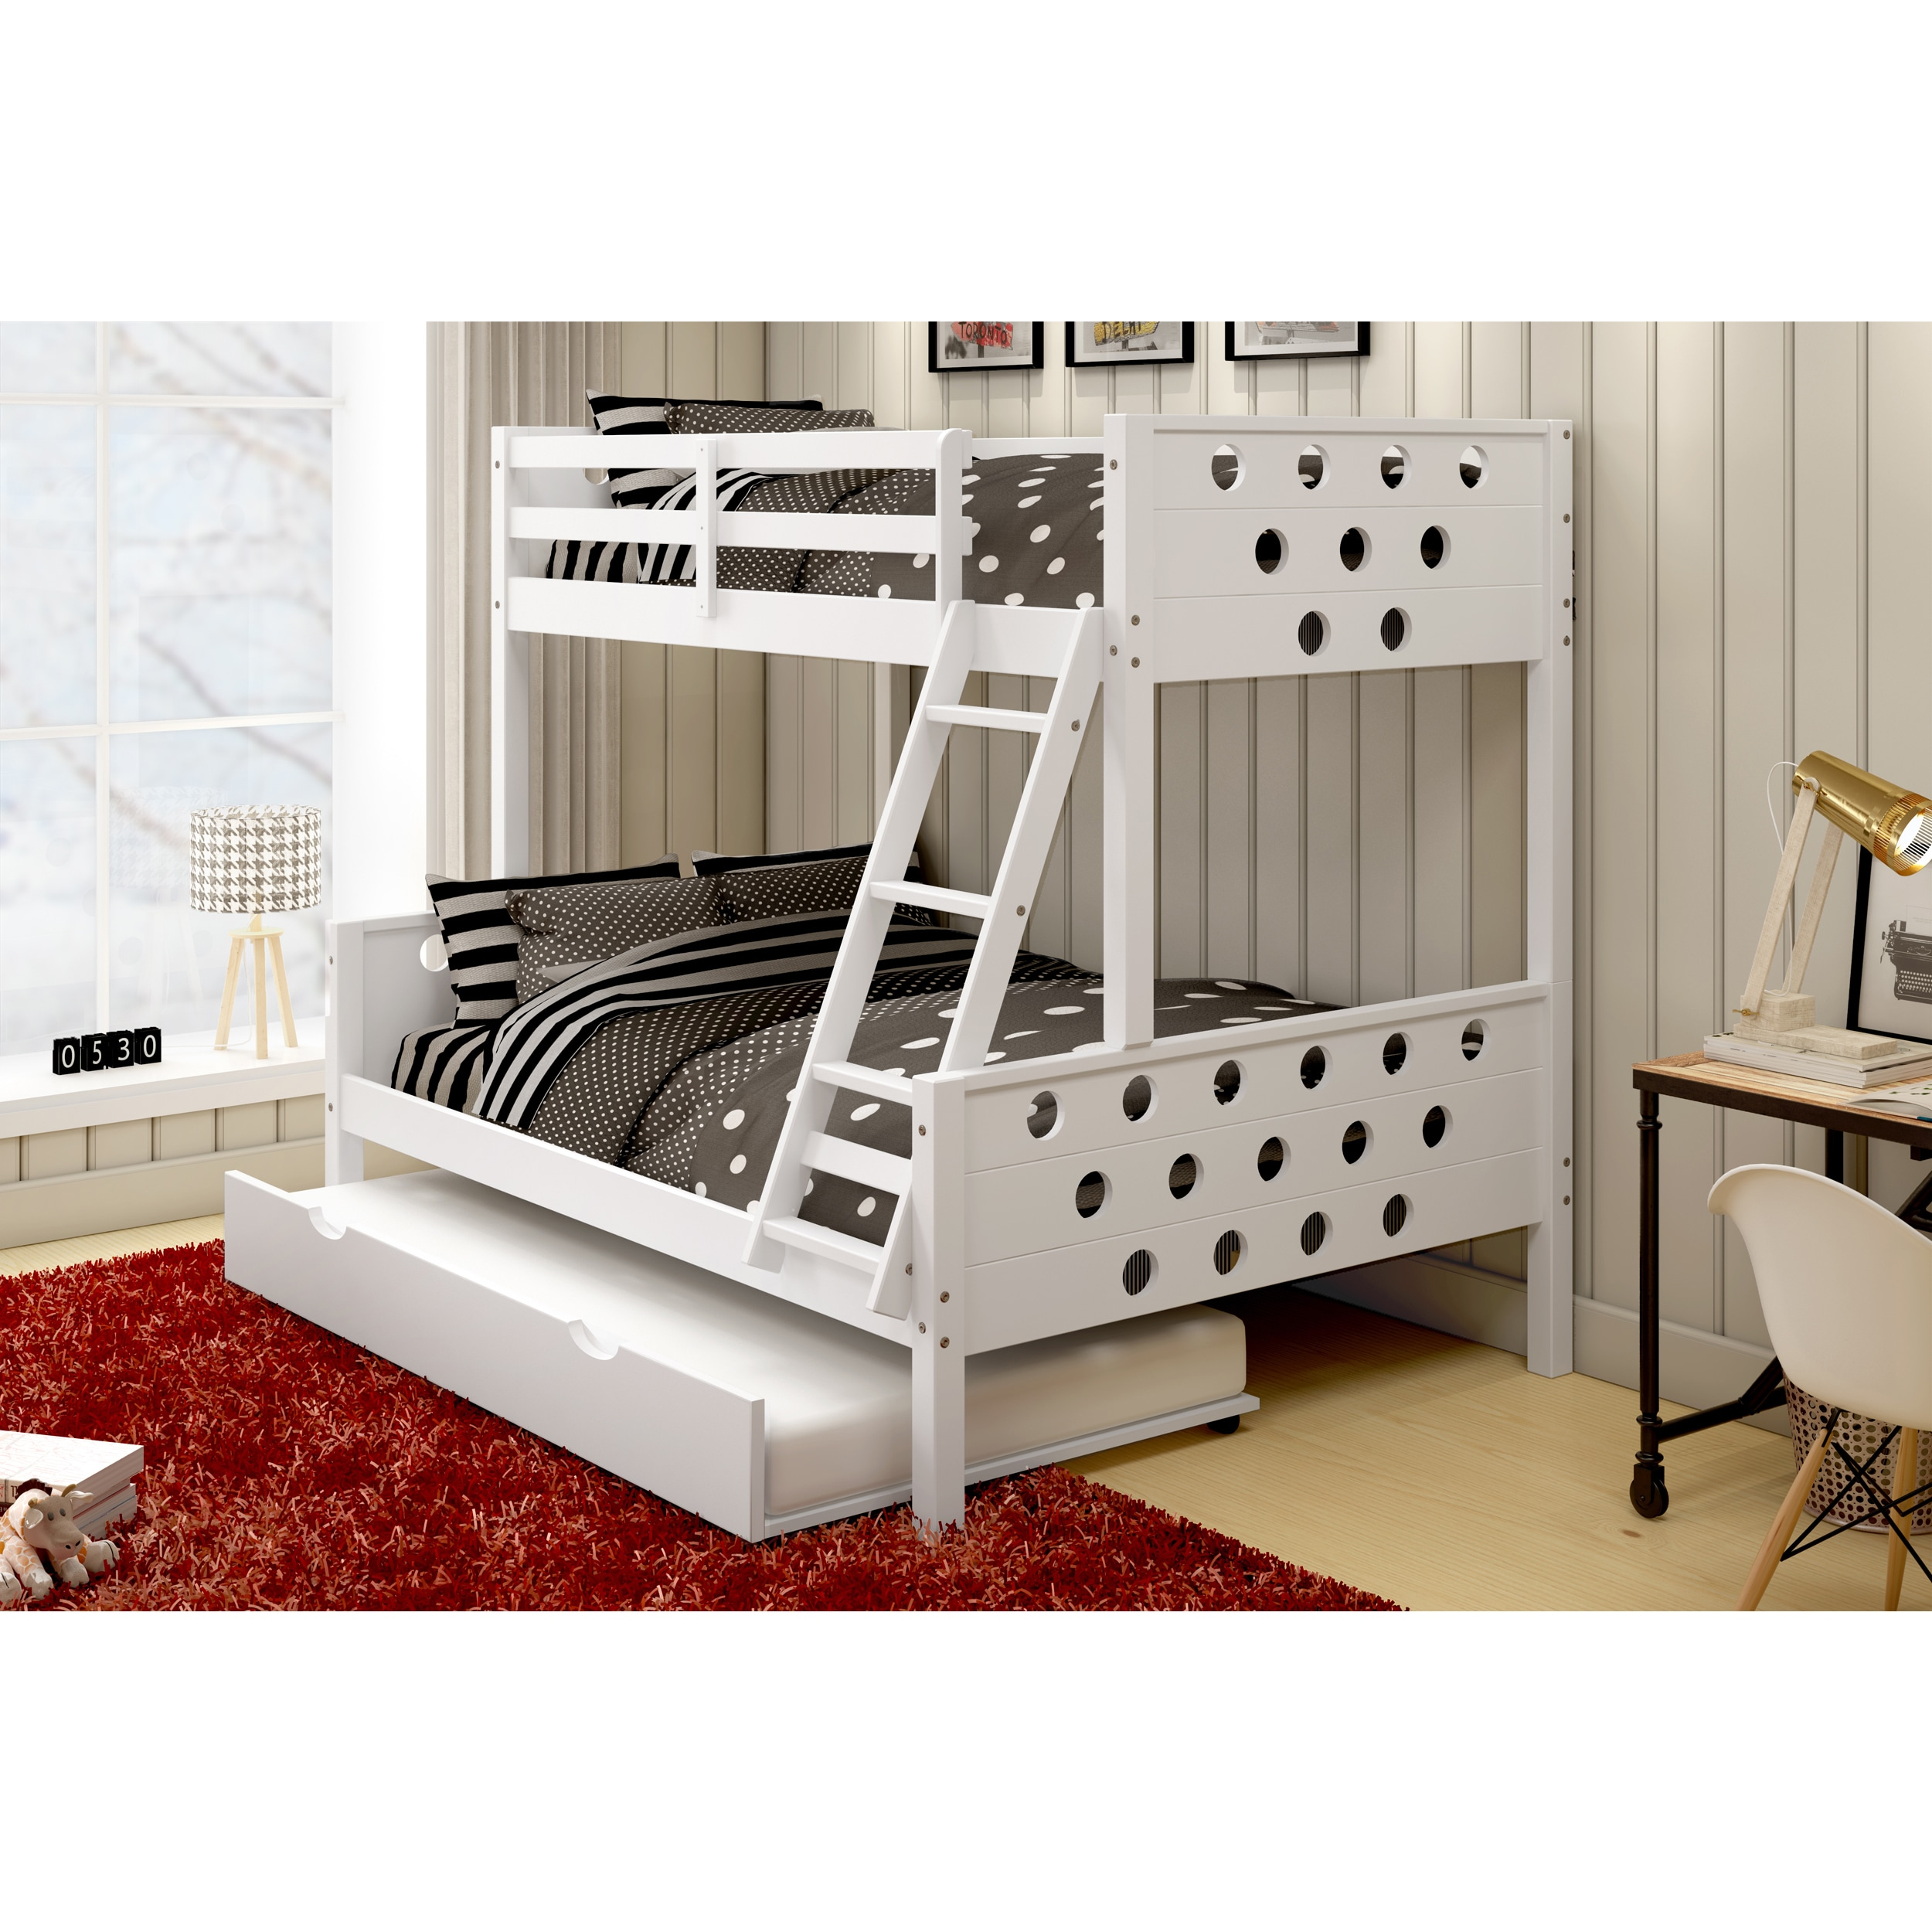 trundle beds rustica full loft over twin trundle bunk w desk chair find it at shopwiki. Black Bedroom Furniture Sets. Home Design Ideas